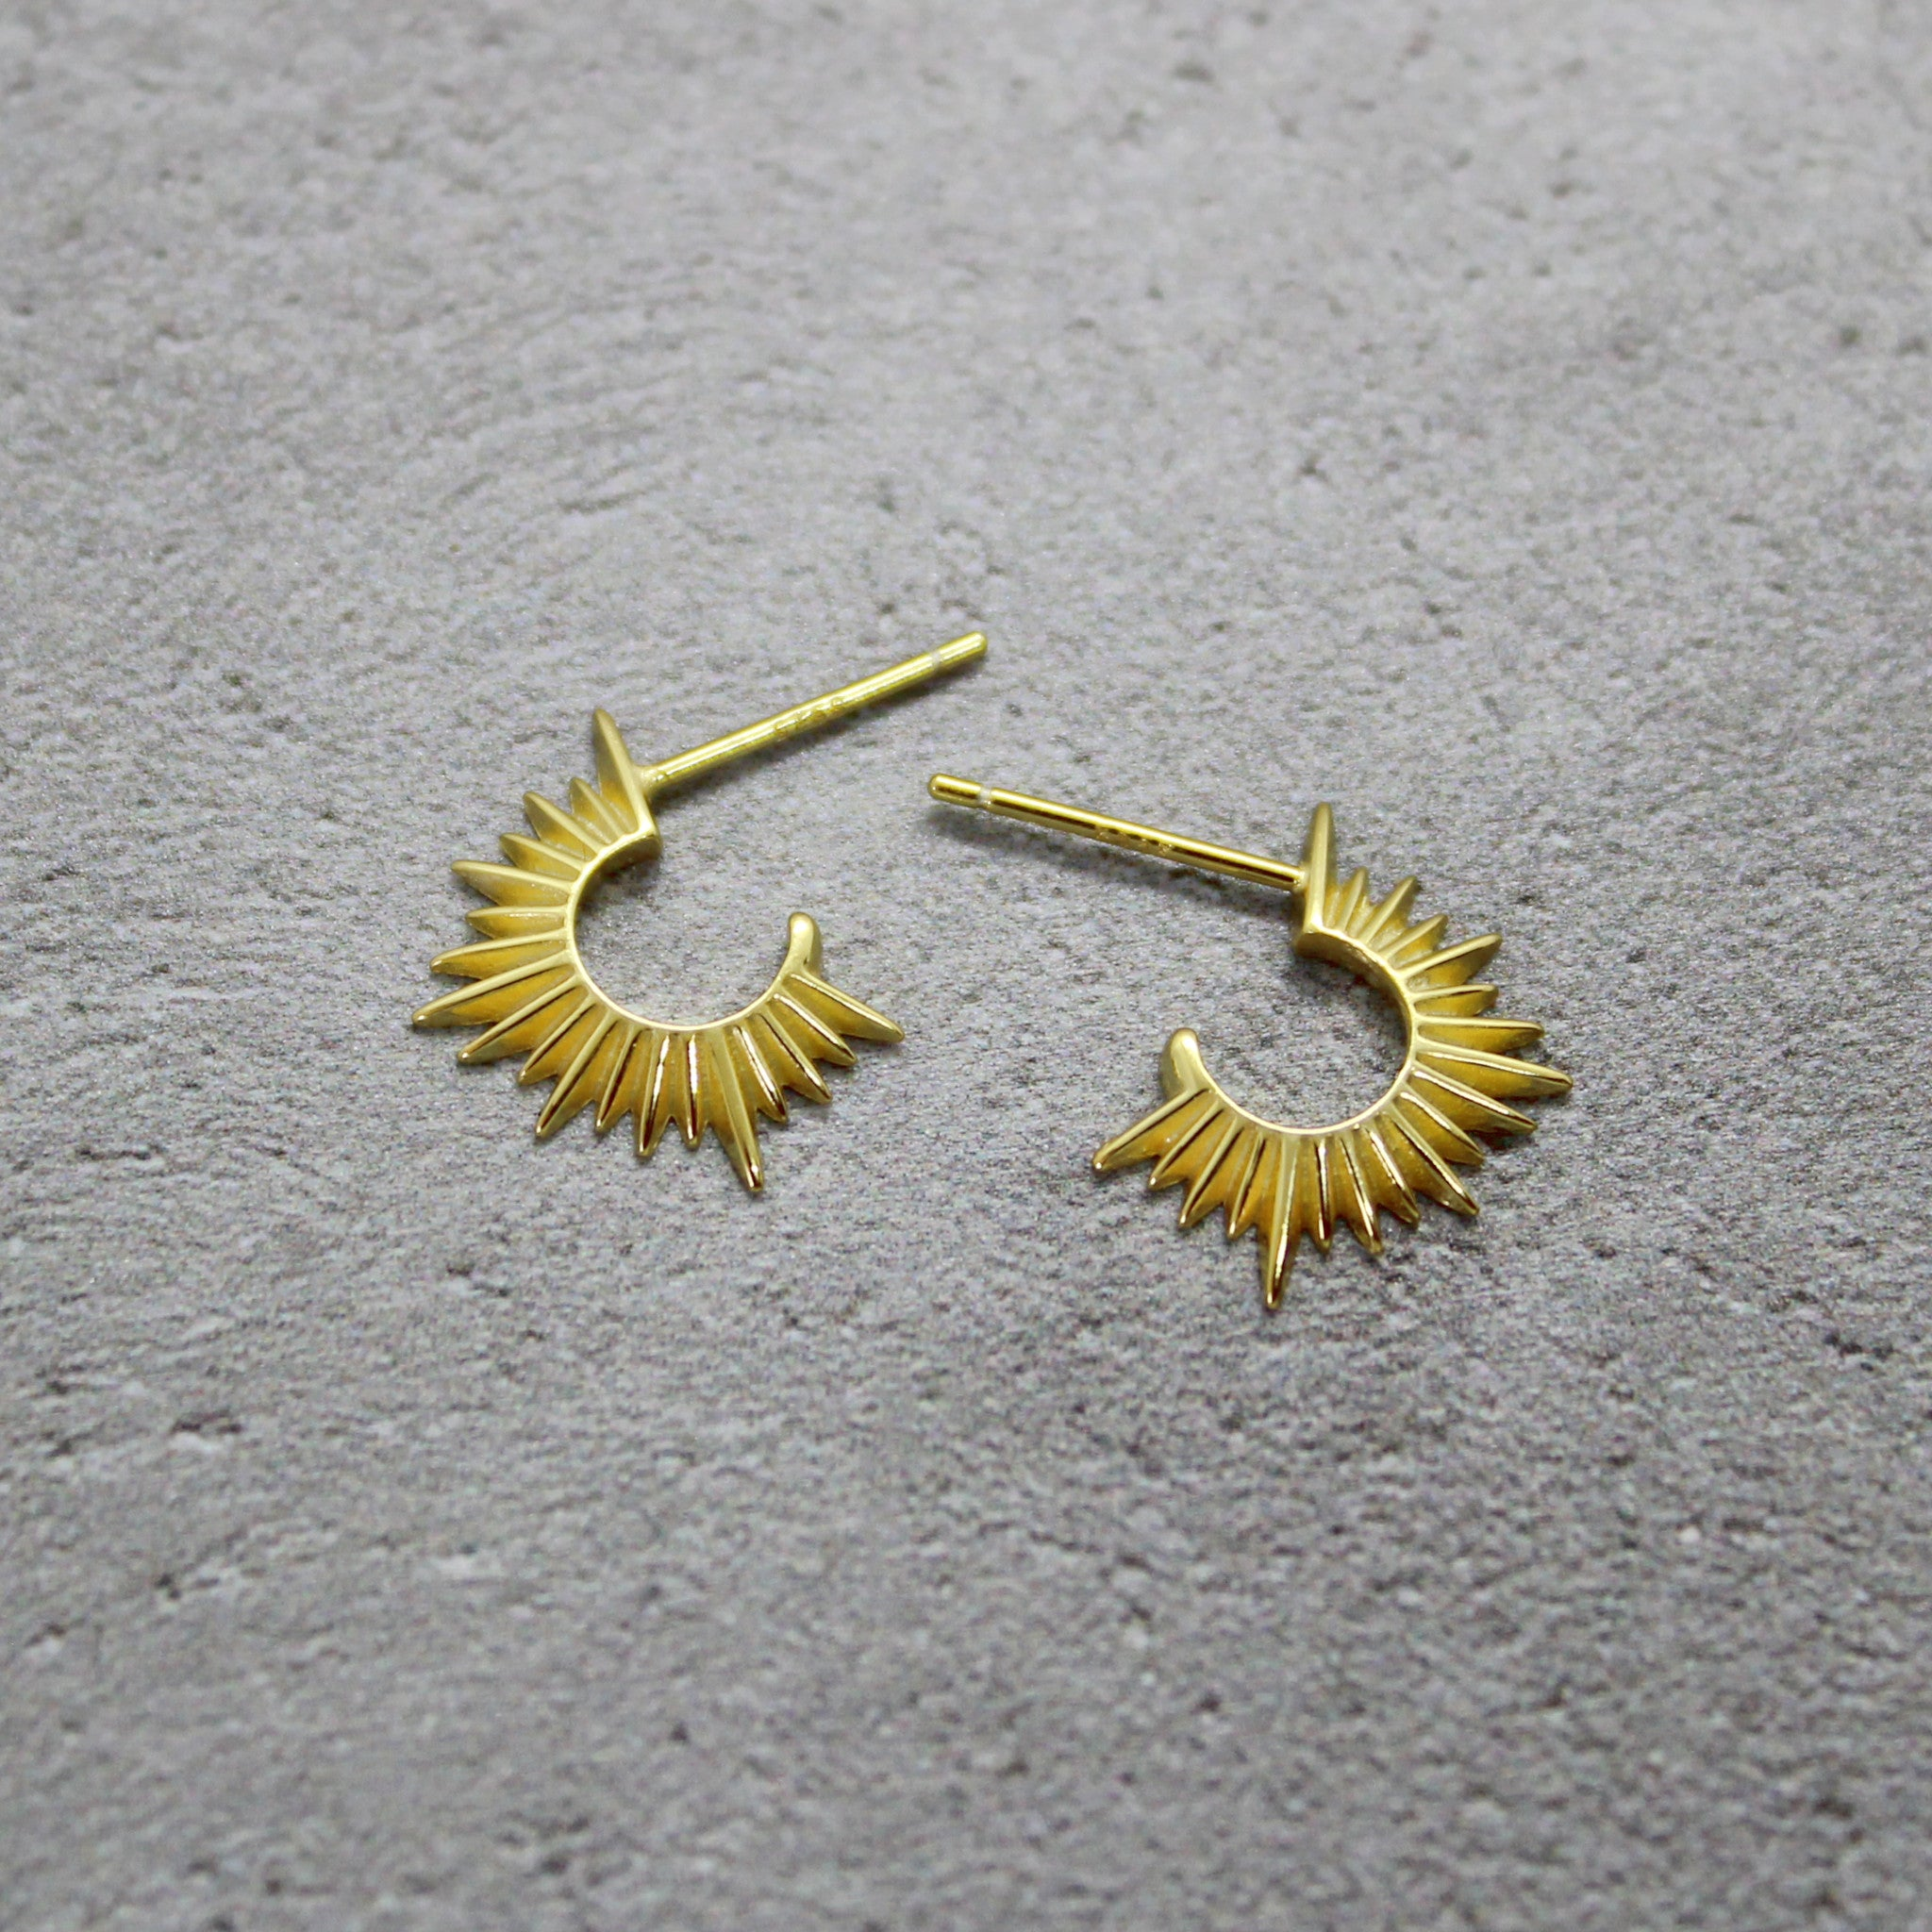 Sunray earrings - Mara studio